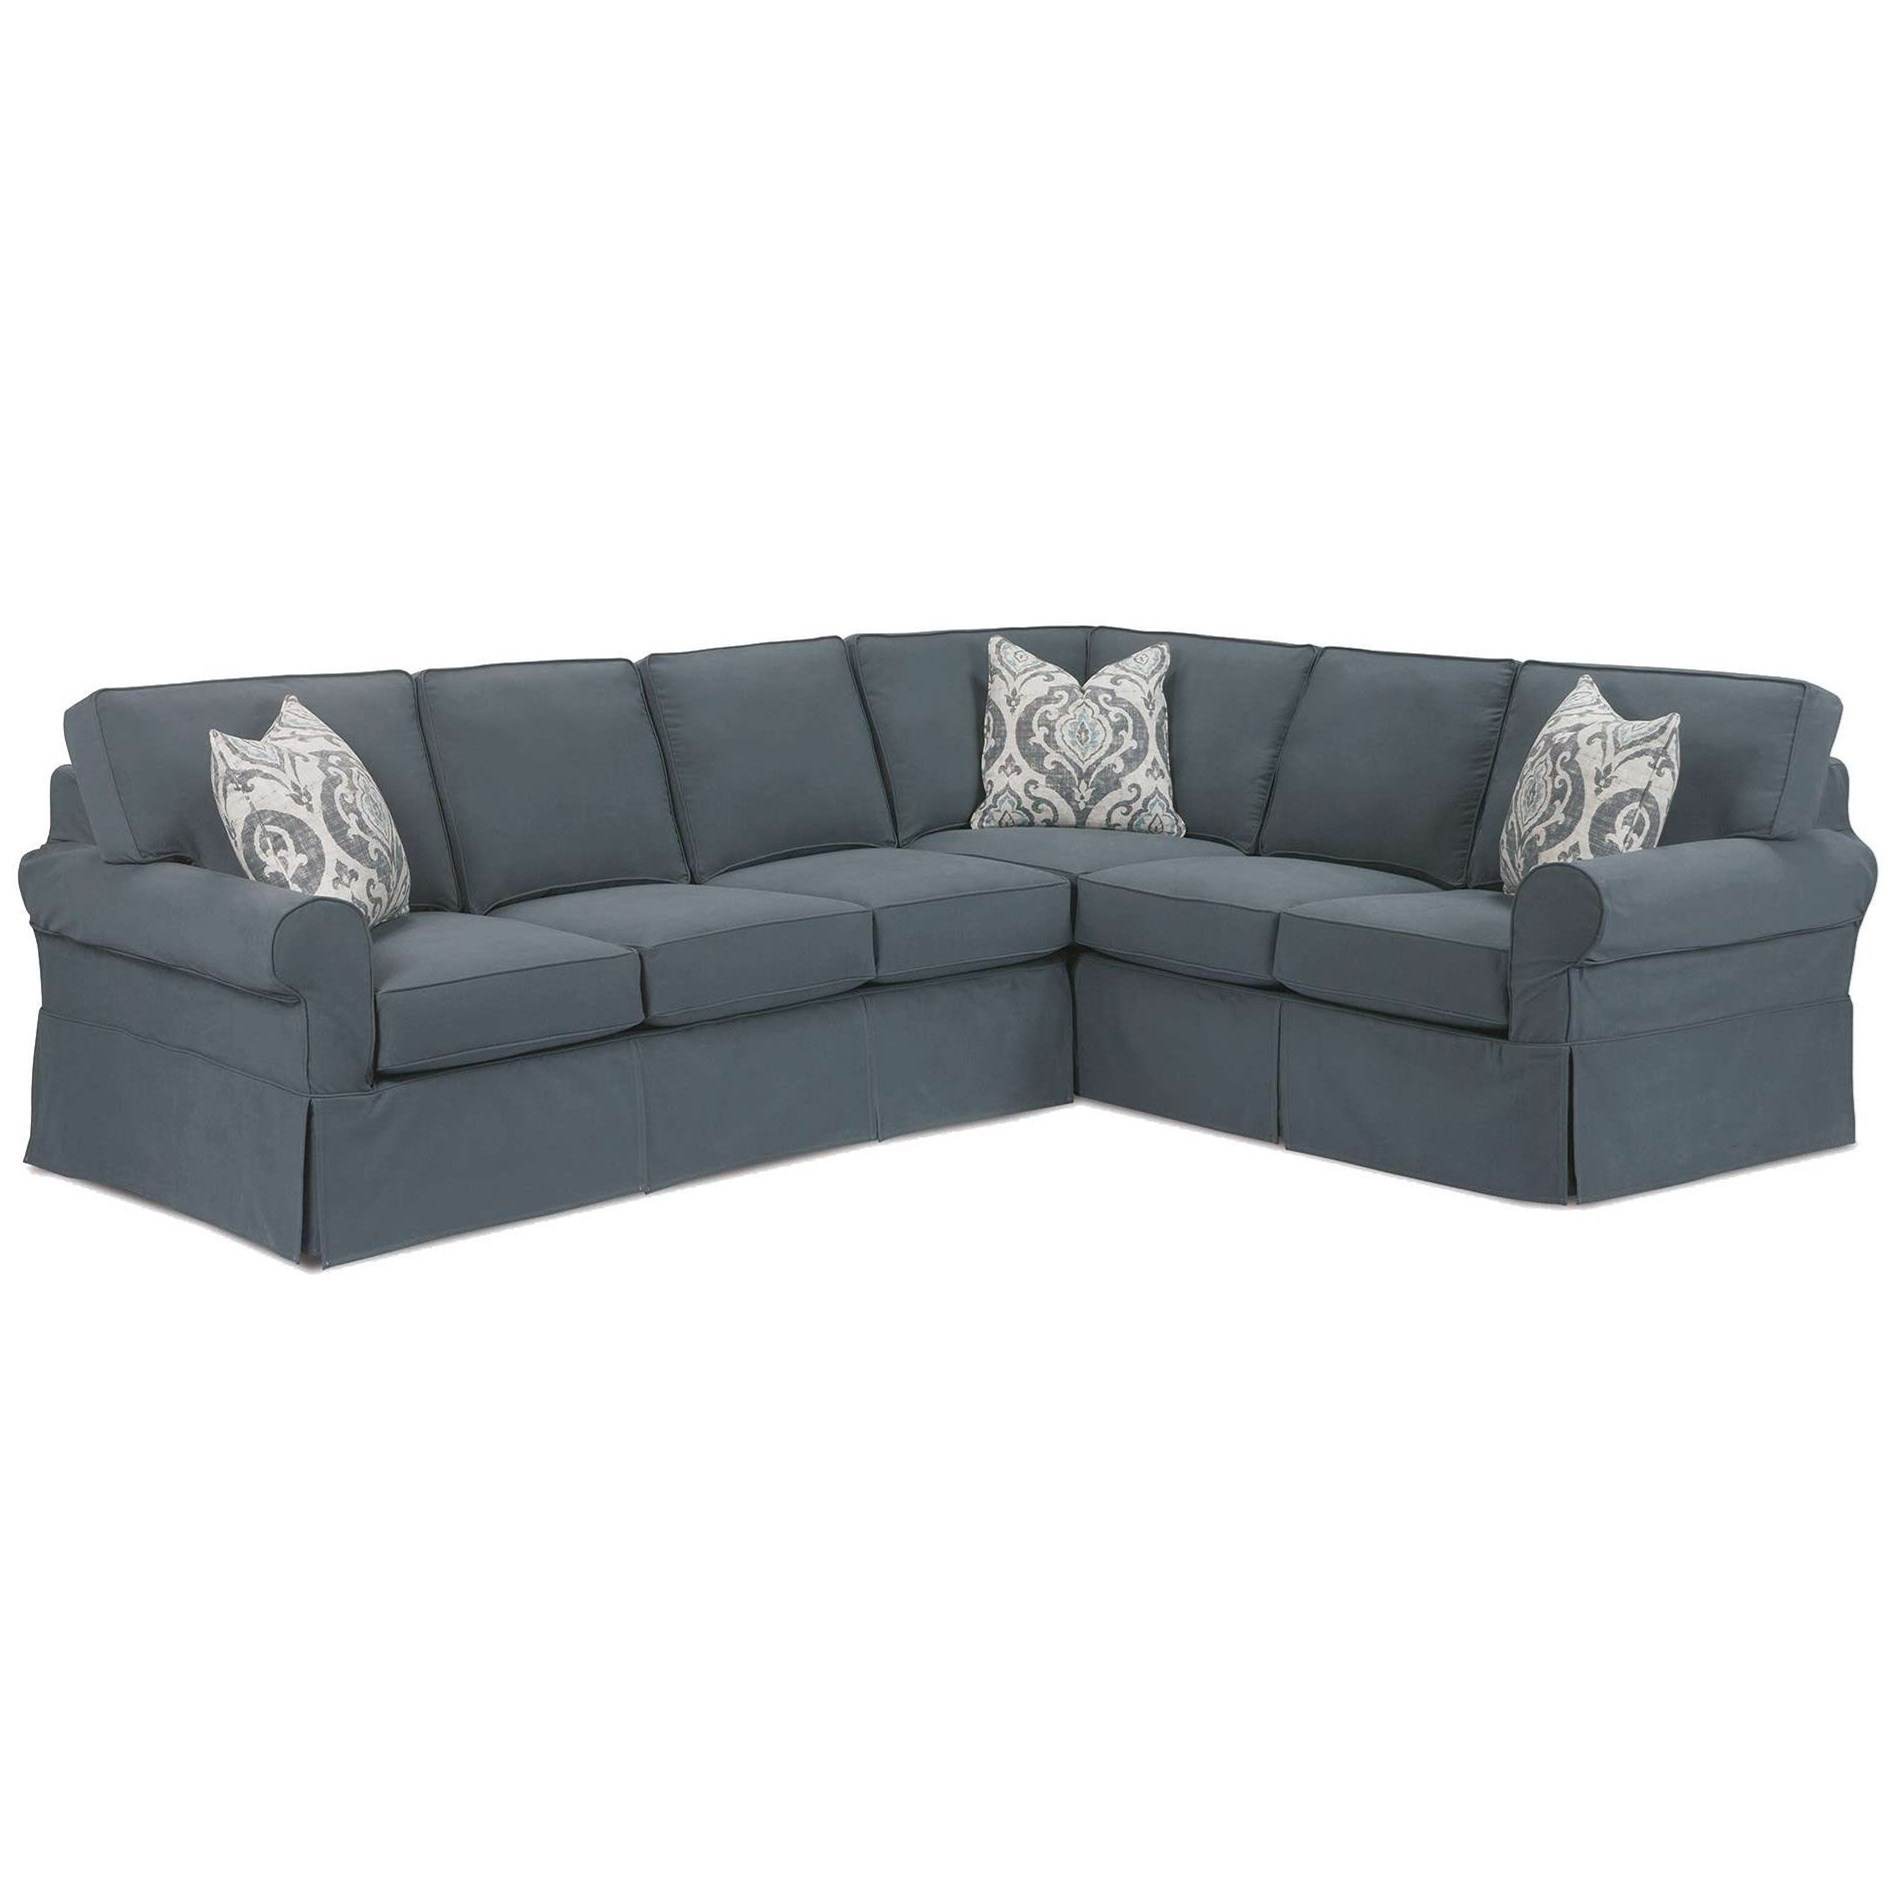 Masquerade 2-Piece Slipcovered Sectional by Rowe at Saugerties Furniture Mart